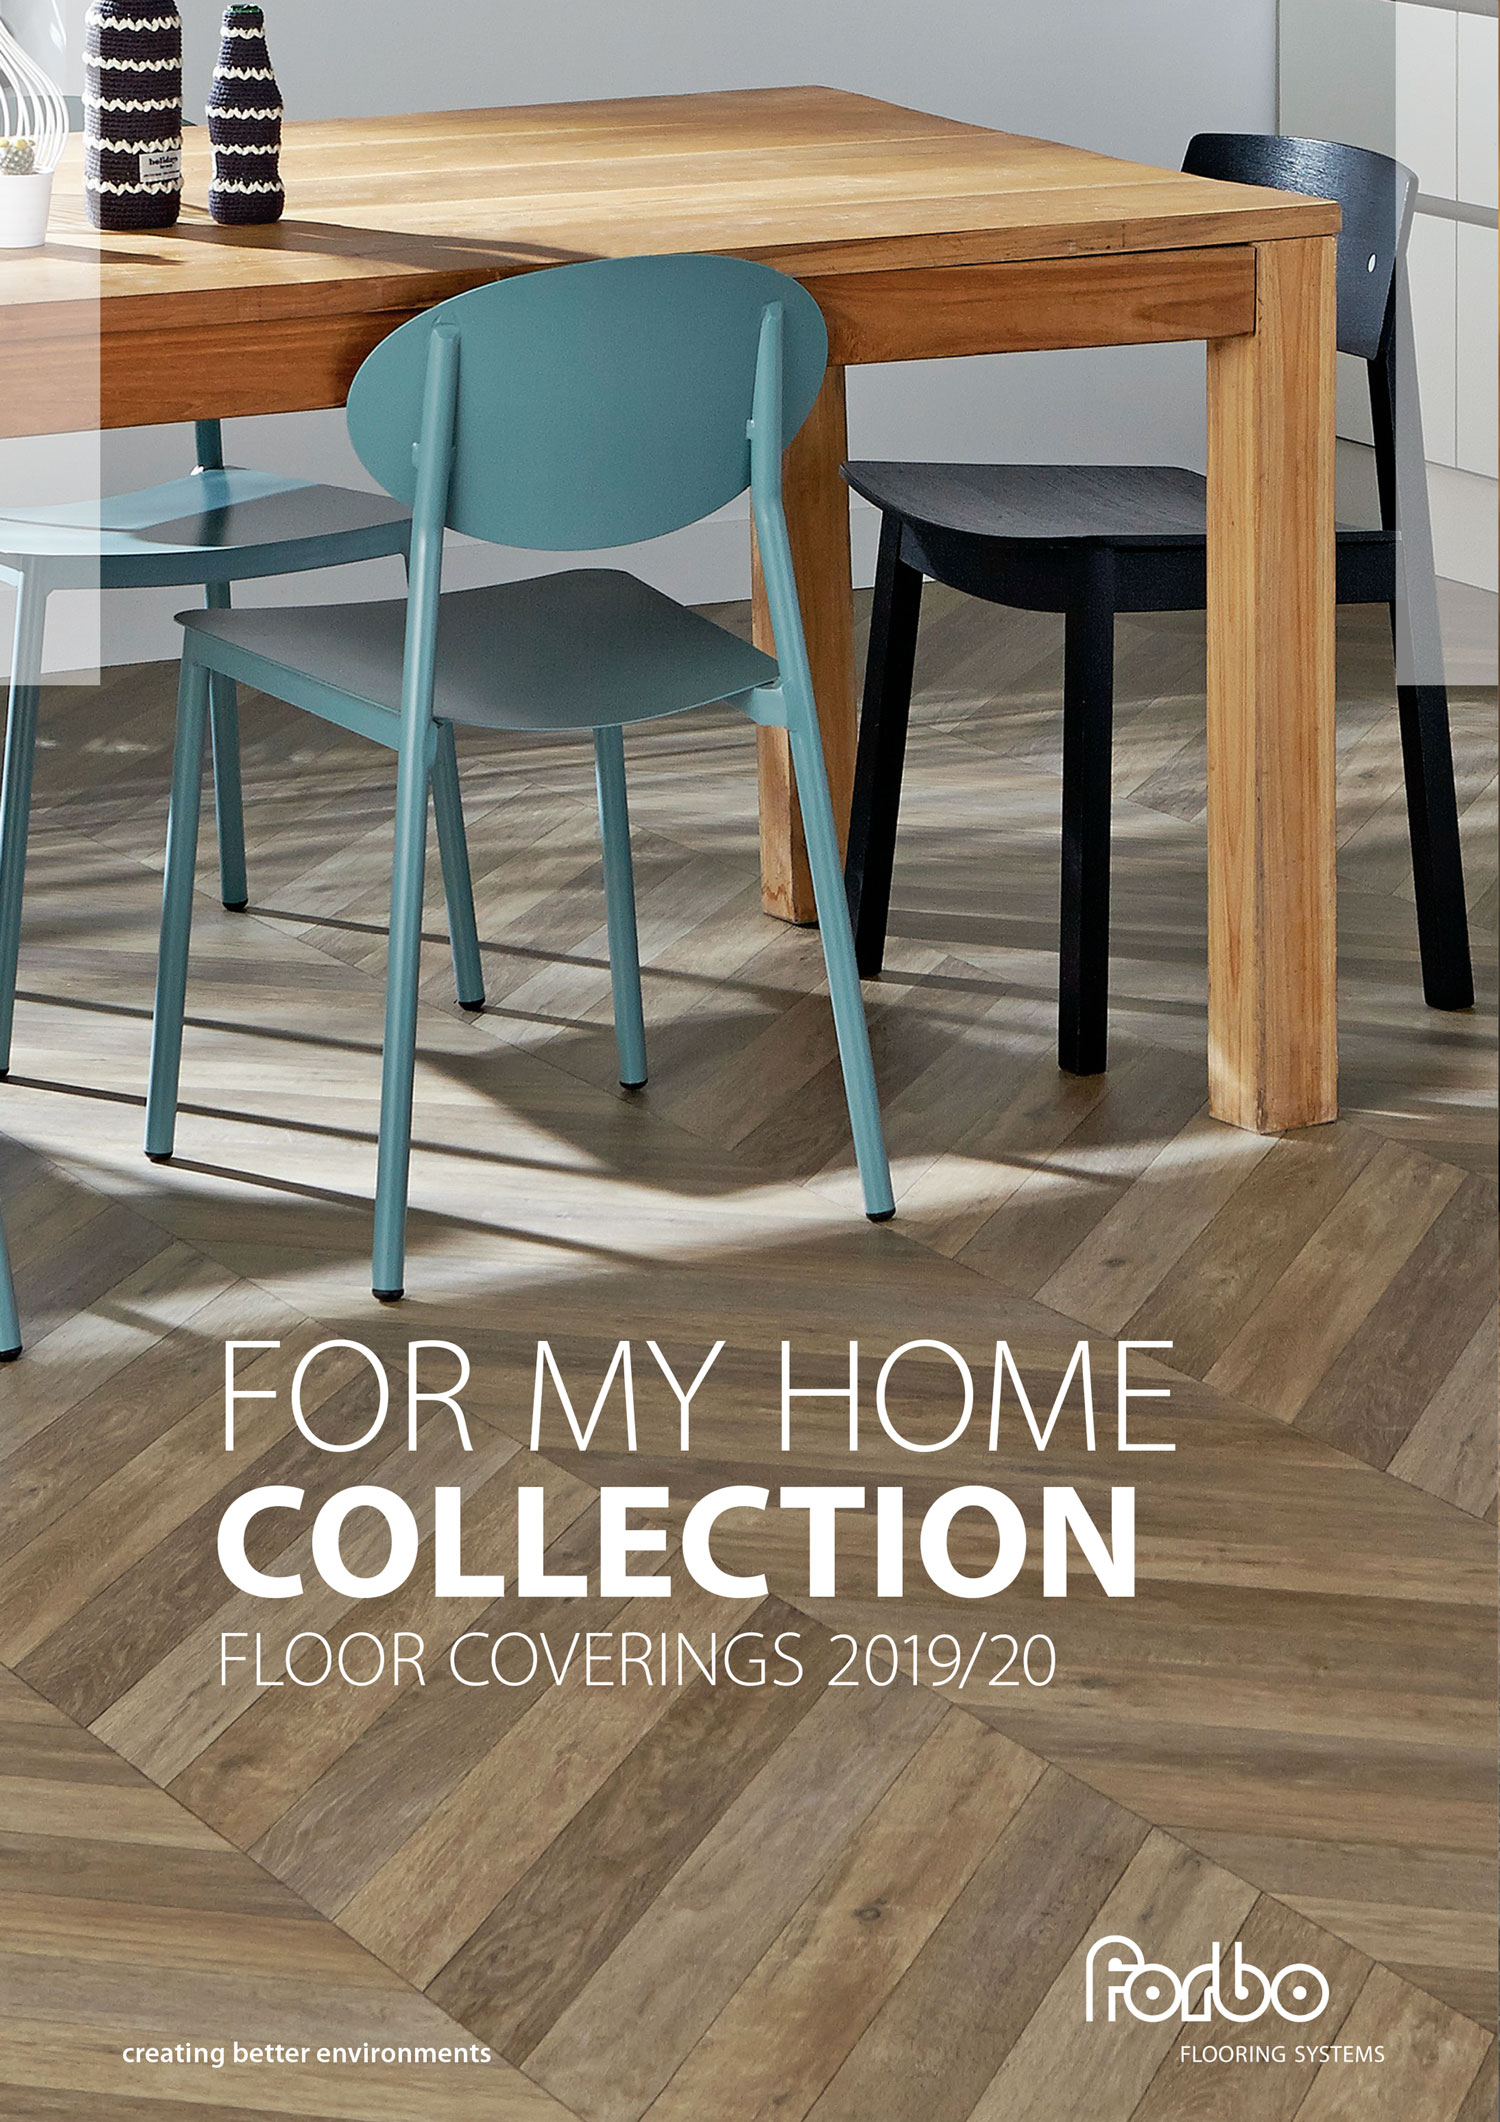 Forbo Flooring<br>UK Ltd